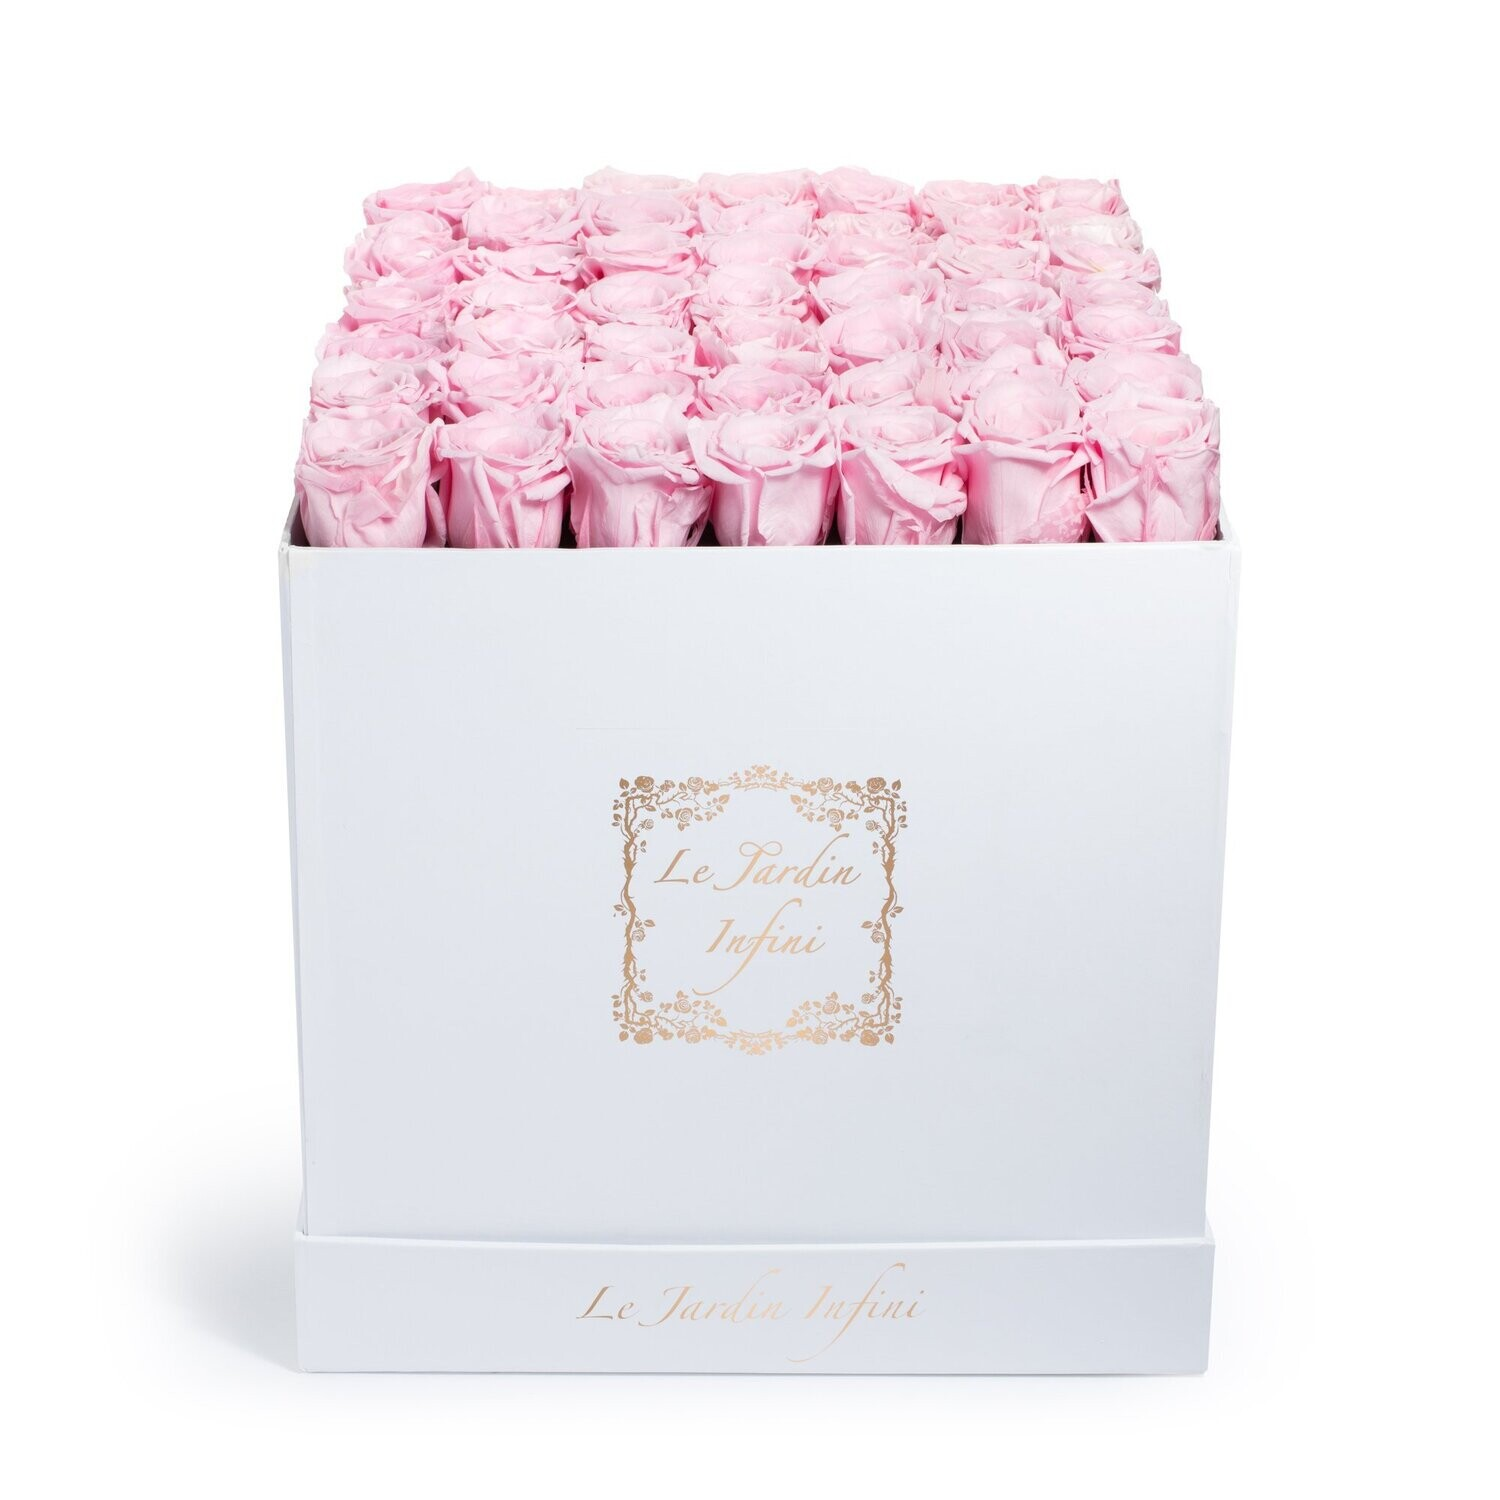 Soft Pink Preserved Roses - Large Square White Box